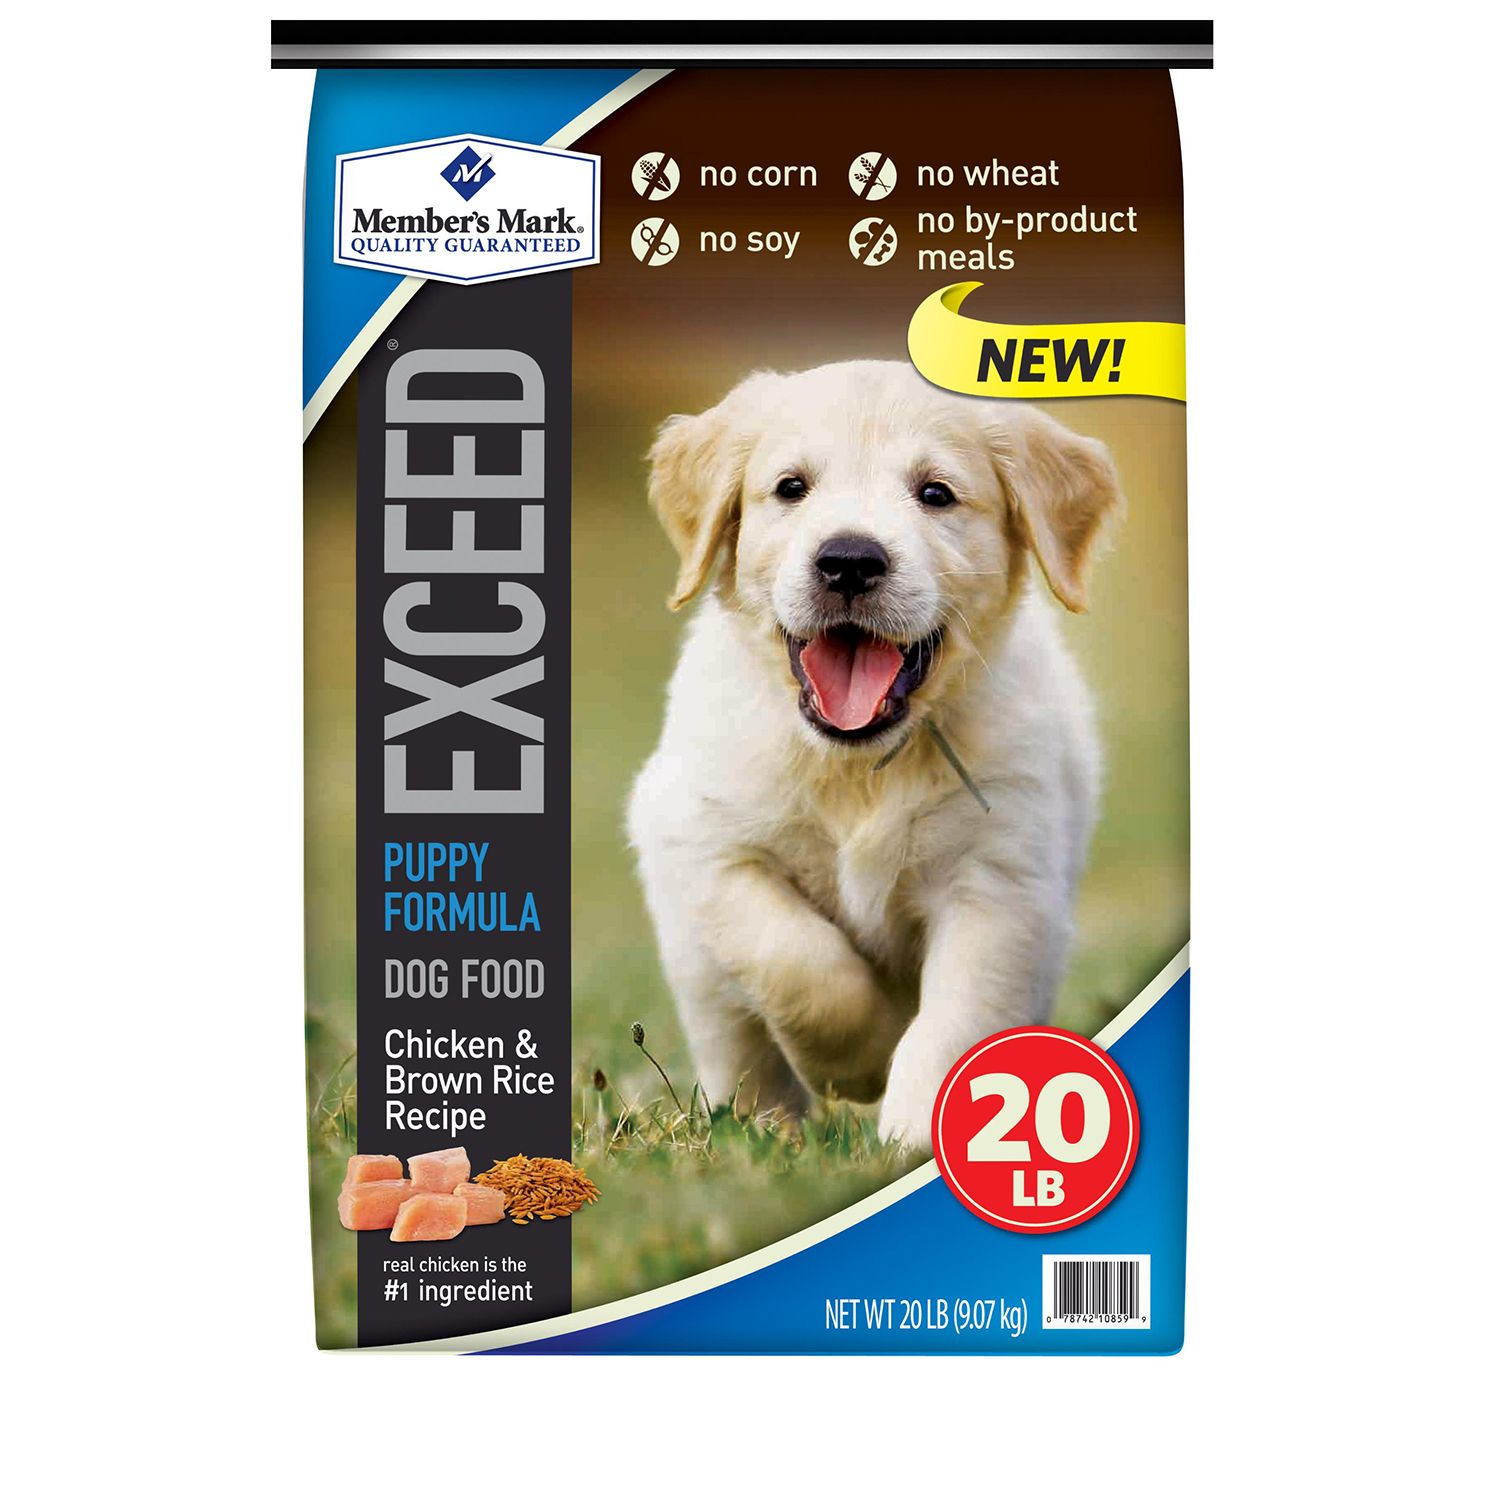 Member's Mark Exceed Puppy Food, Chicken & Rice (20 lbs.) by SAM'S WHOLESALE CLUB